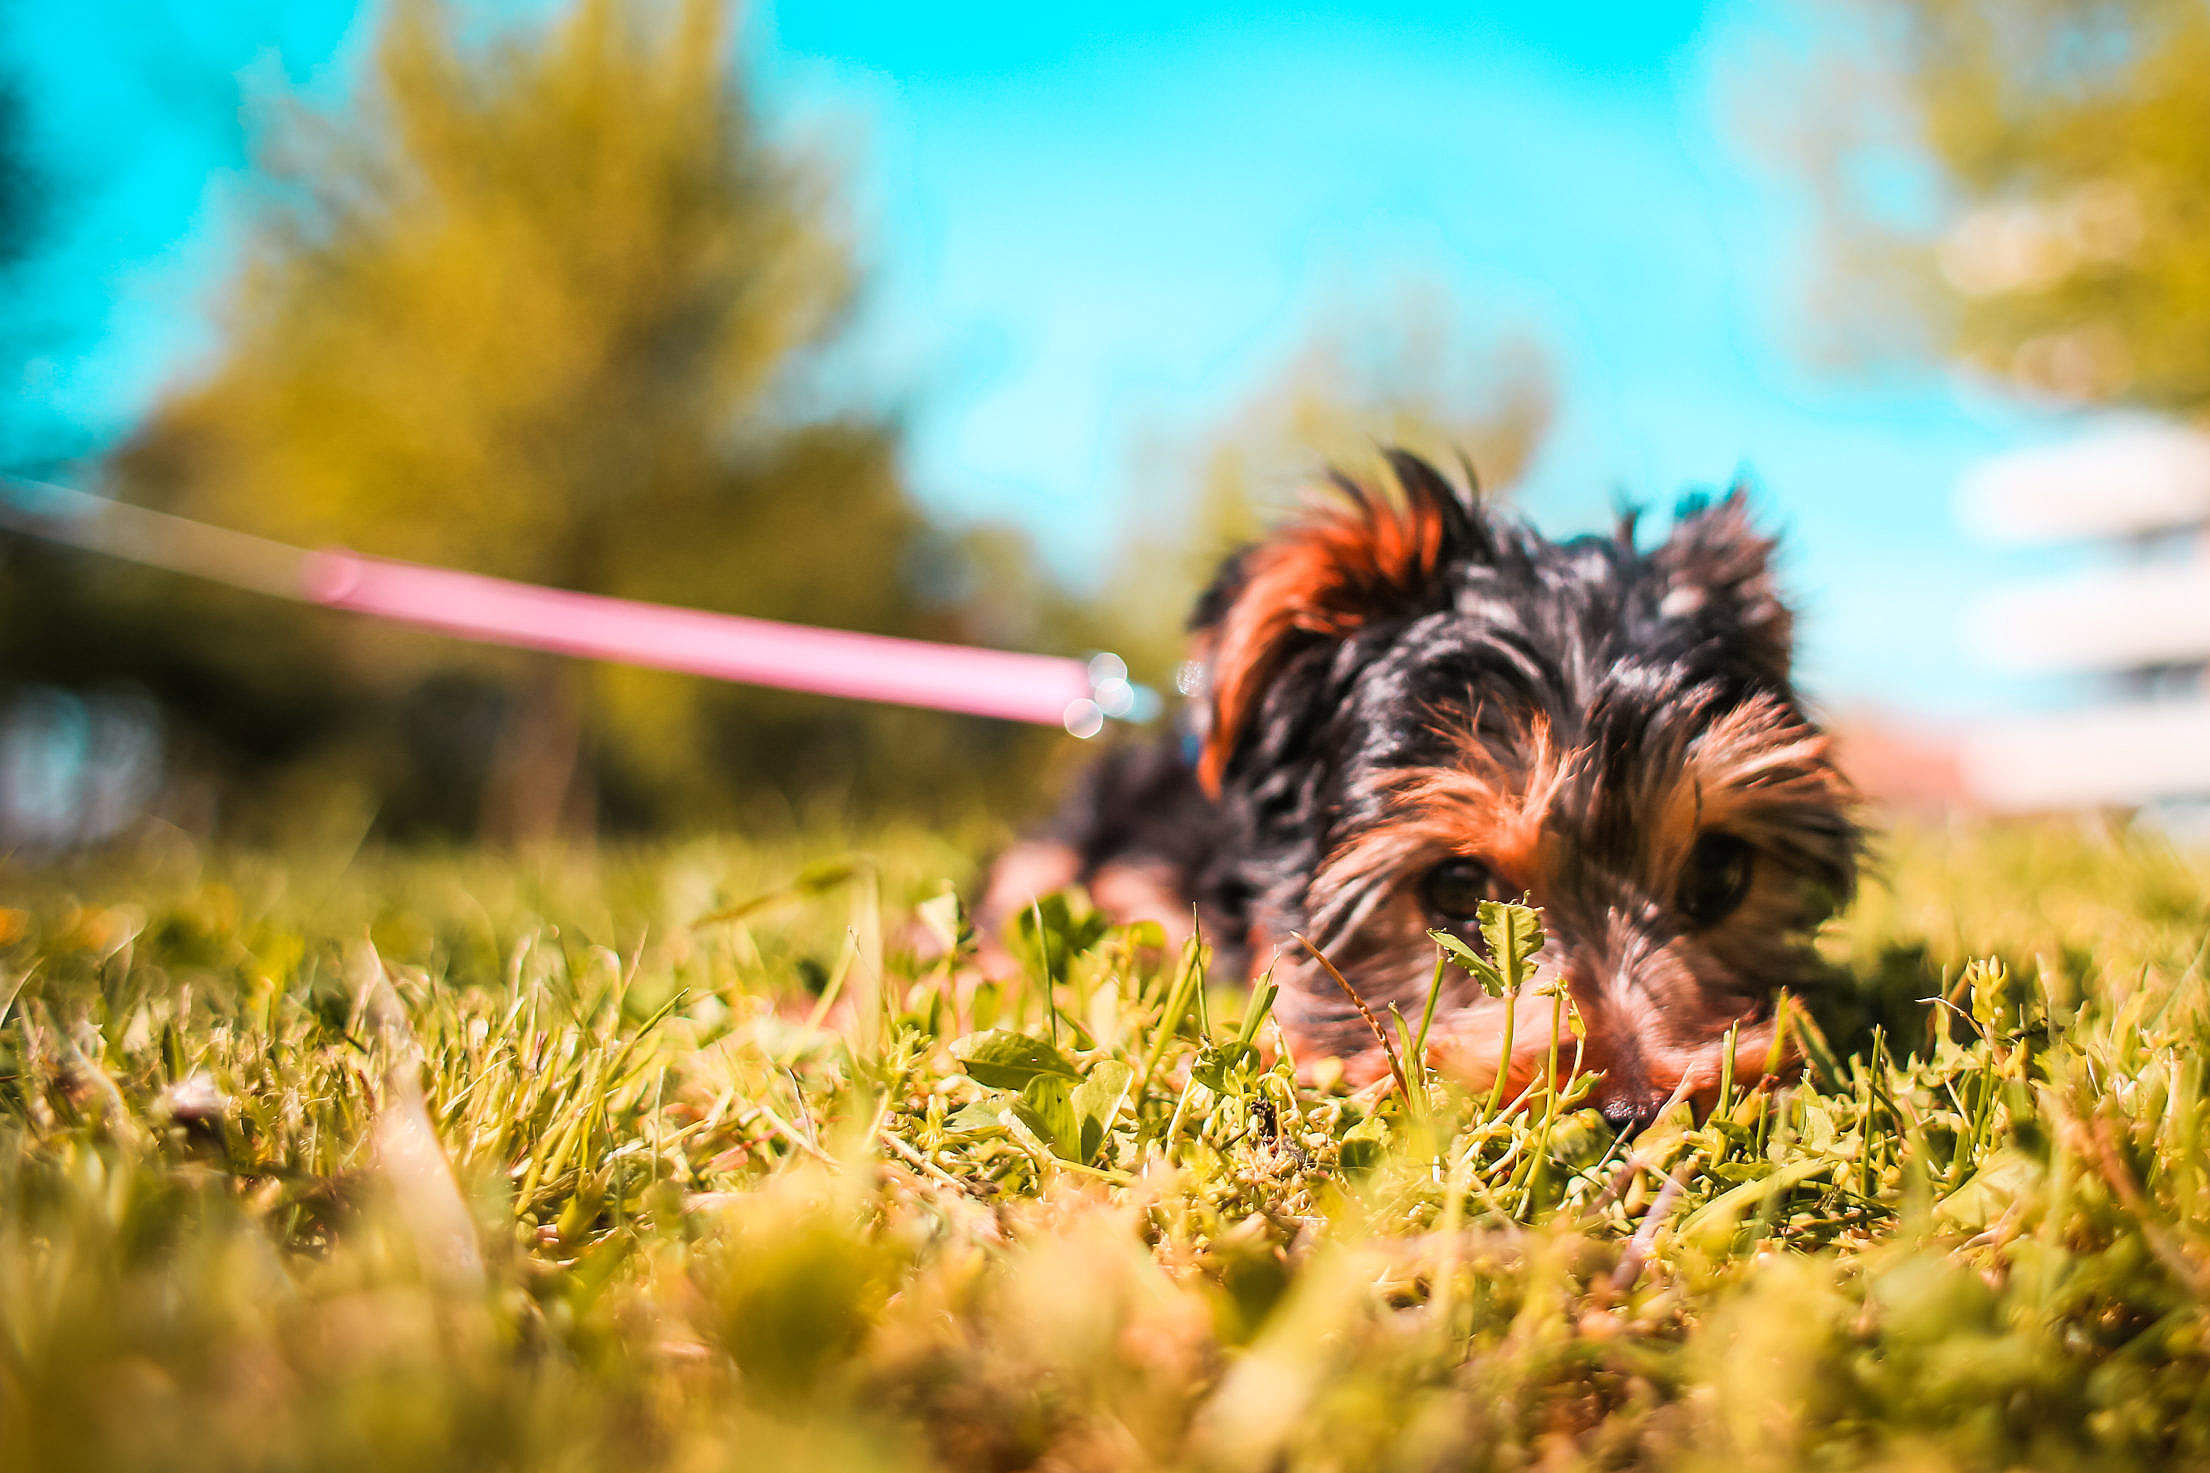 Cute Yorkshire-Terrier Puppy Playing Hide and Seek Free Stock Photo